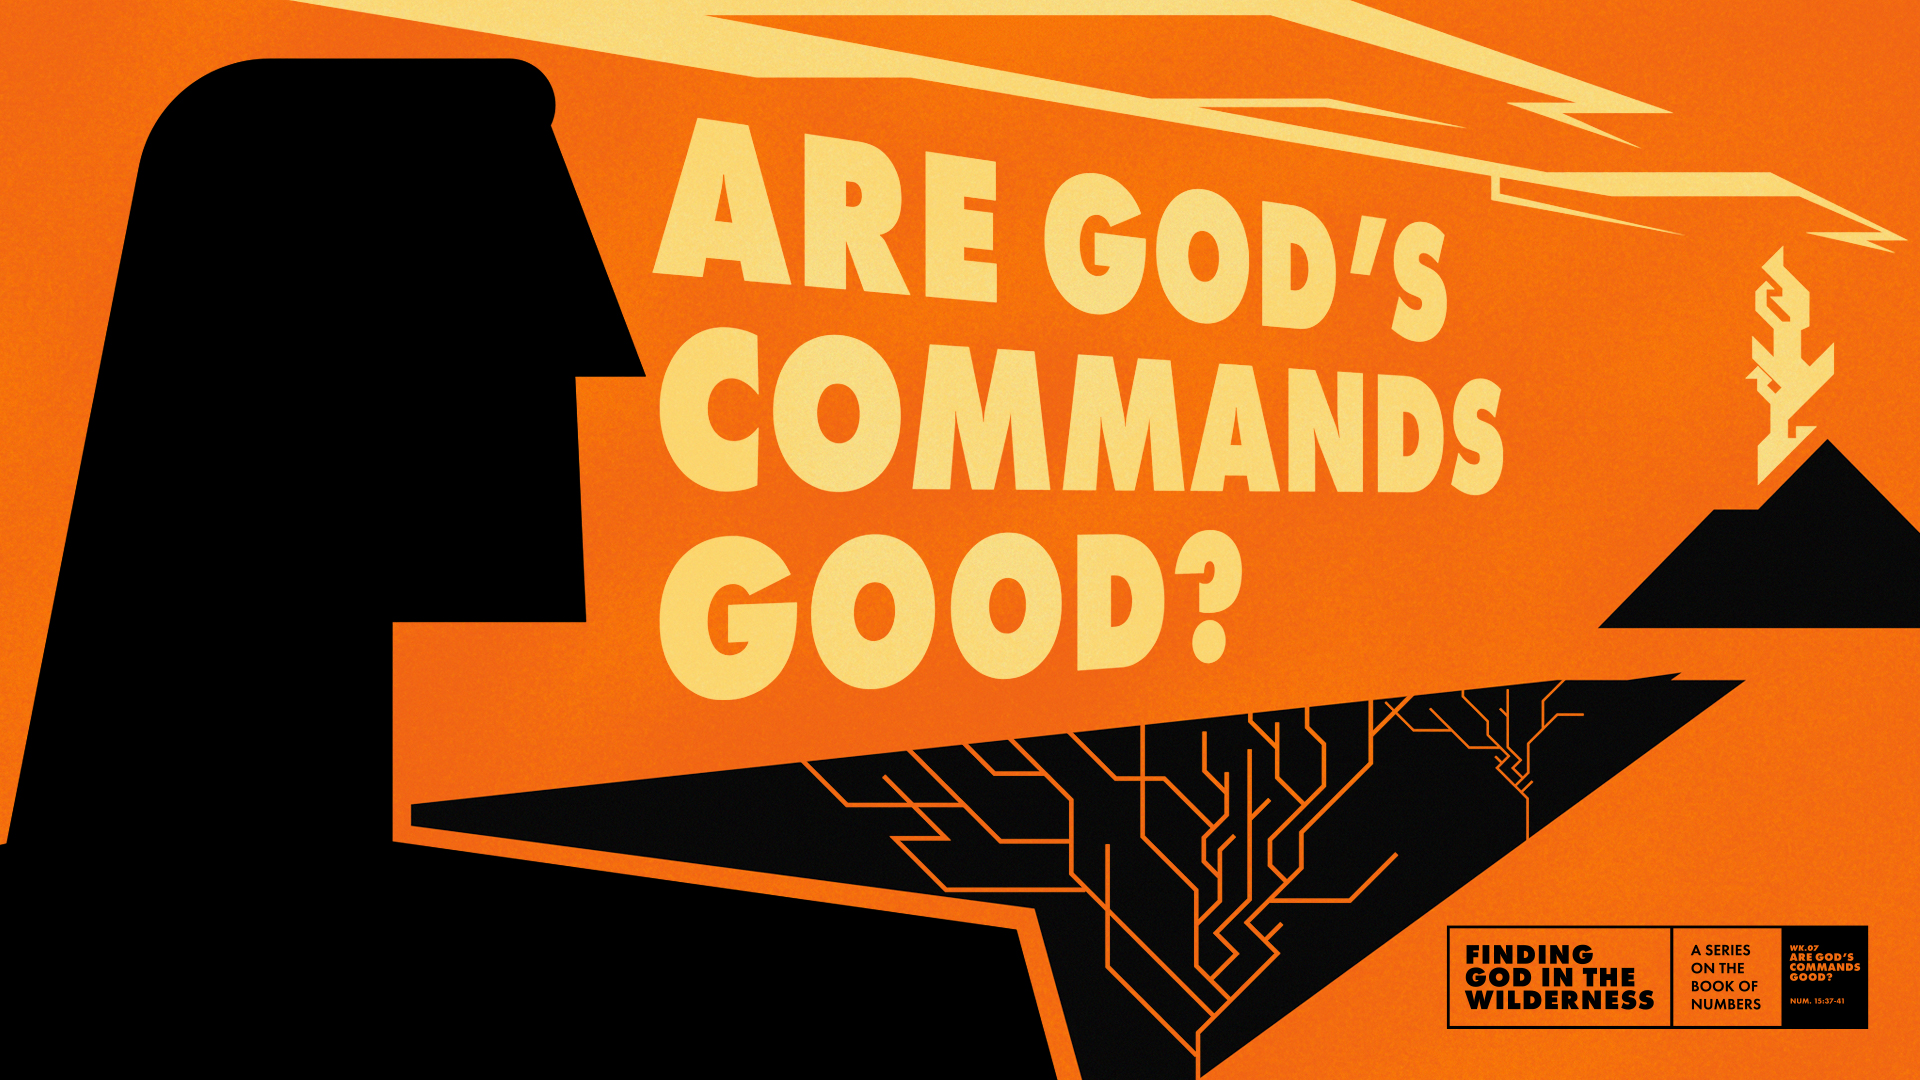 Are God's Commands Good?